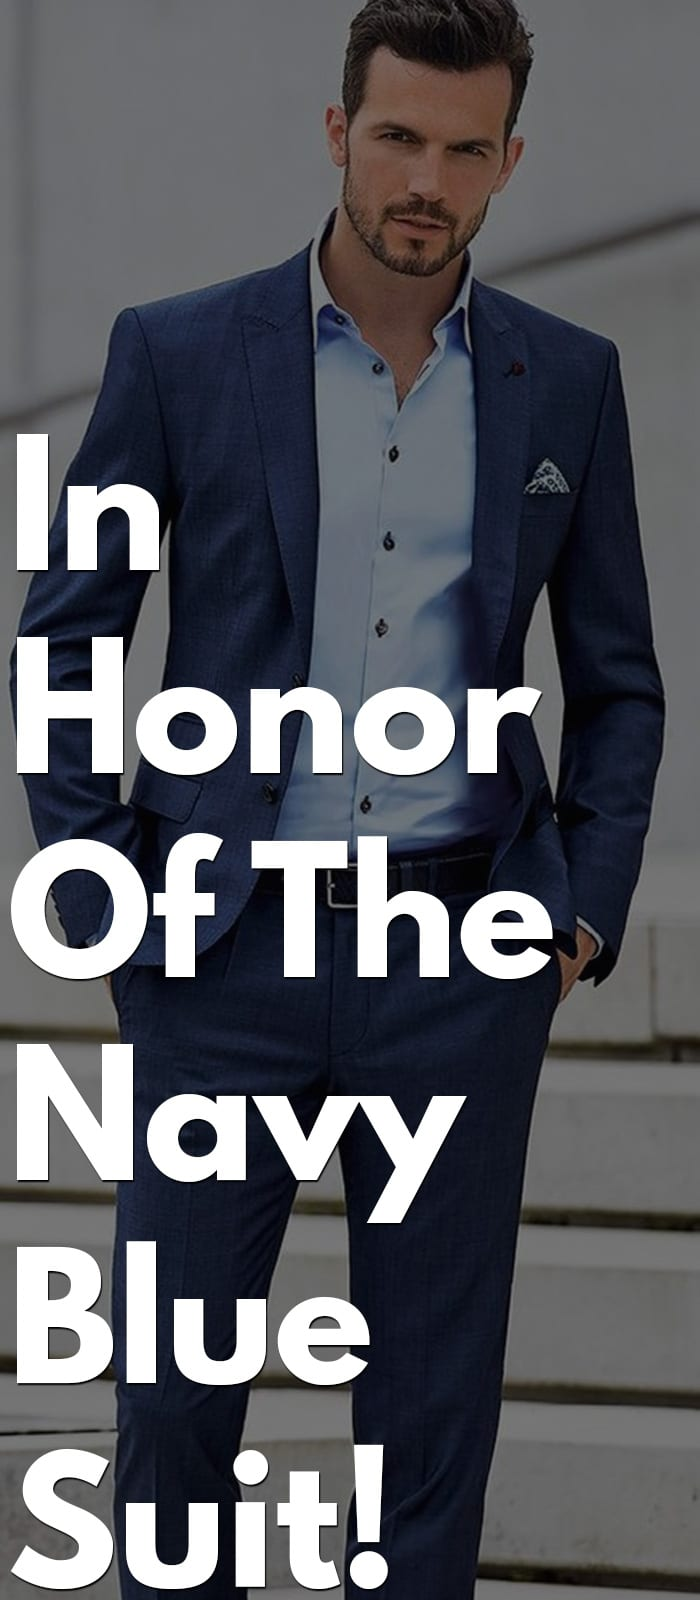 In Honor Of The Navy Blue Suit!